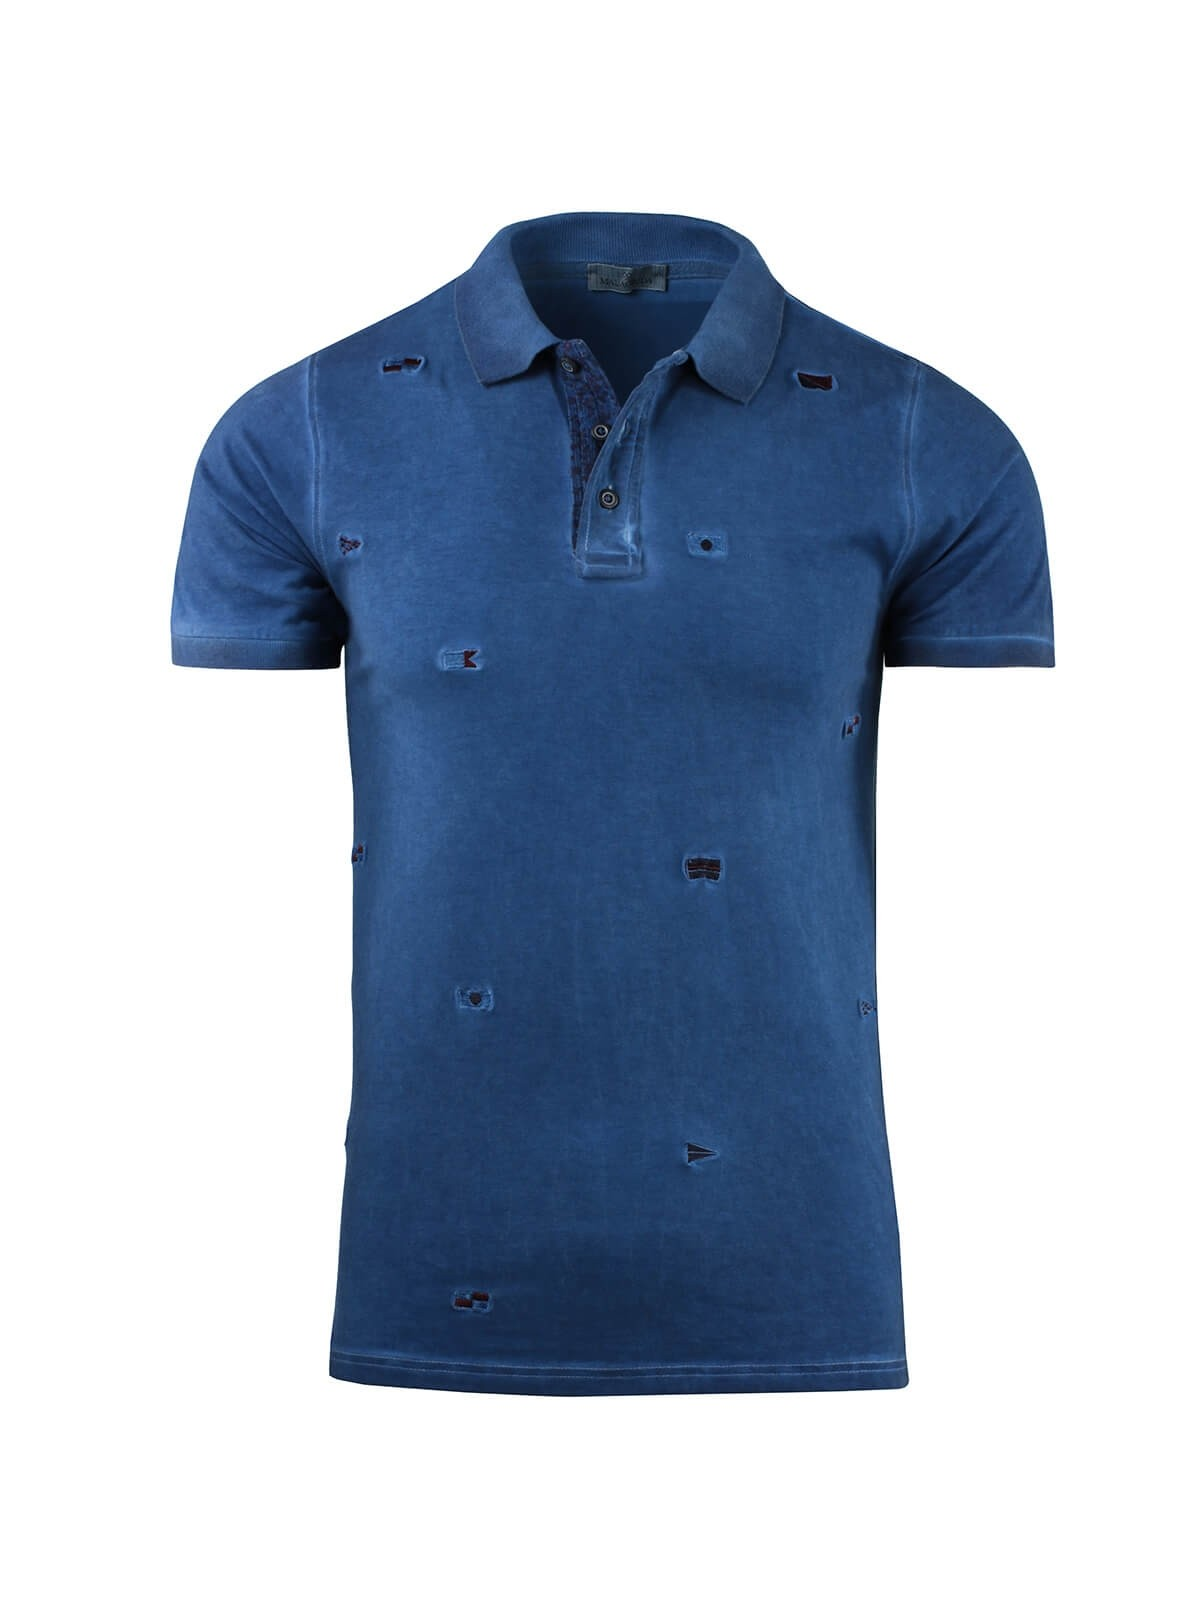 POLO IN JERSEY COOL DYED